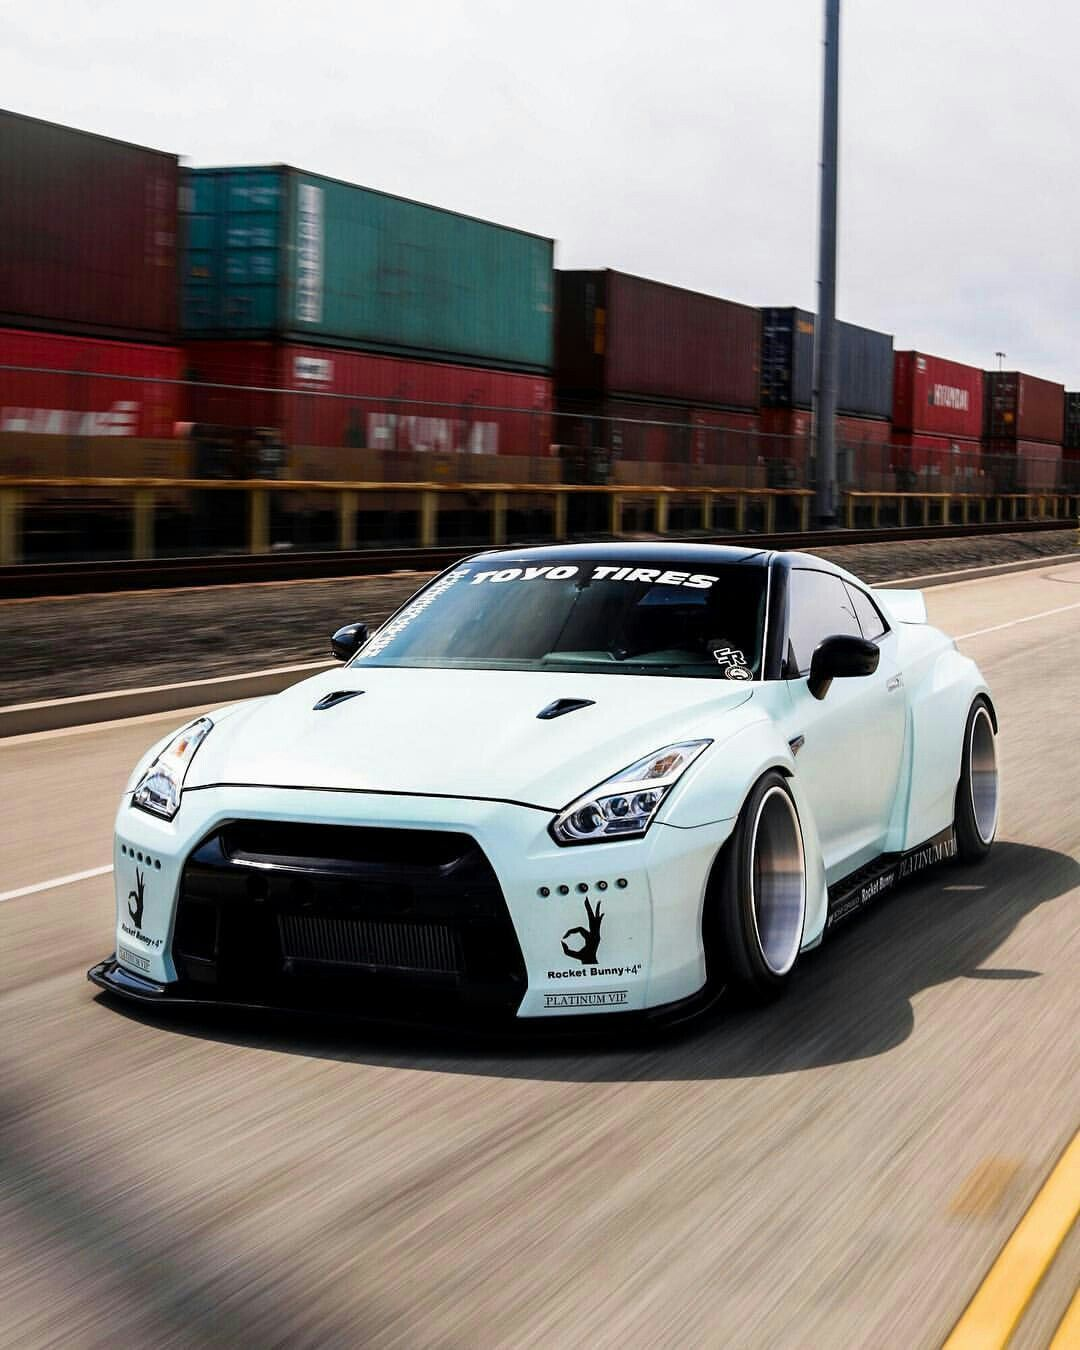 nissan skyline GTR - nissan JDM cars - lowered stanced cars